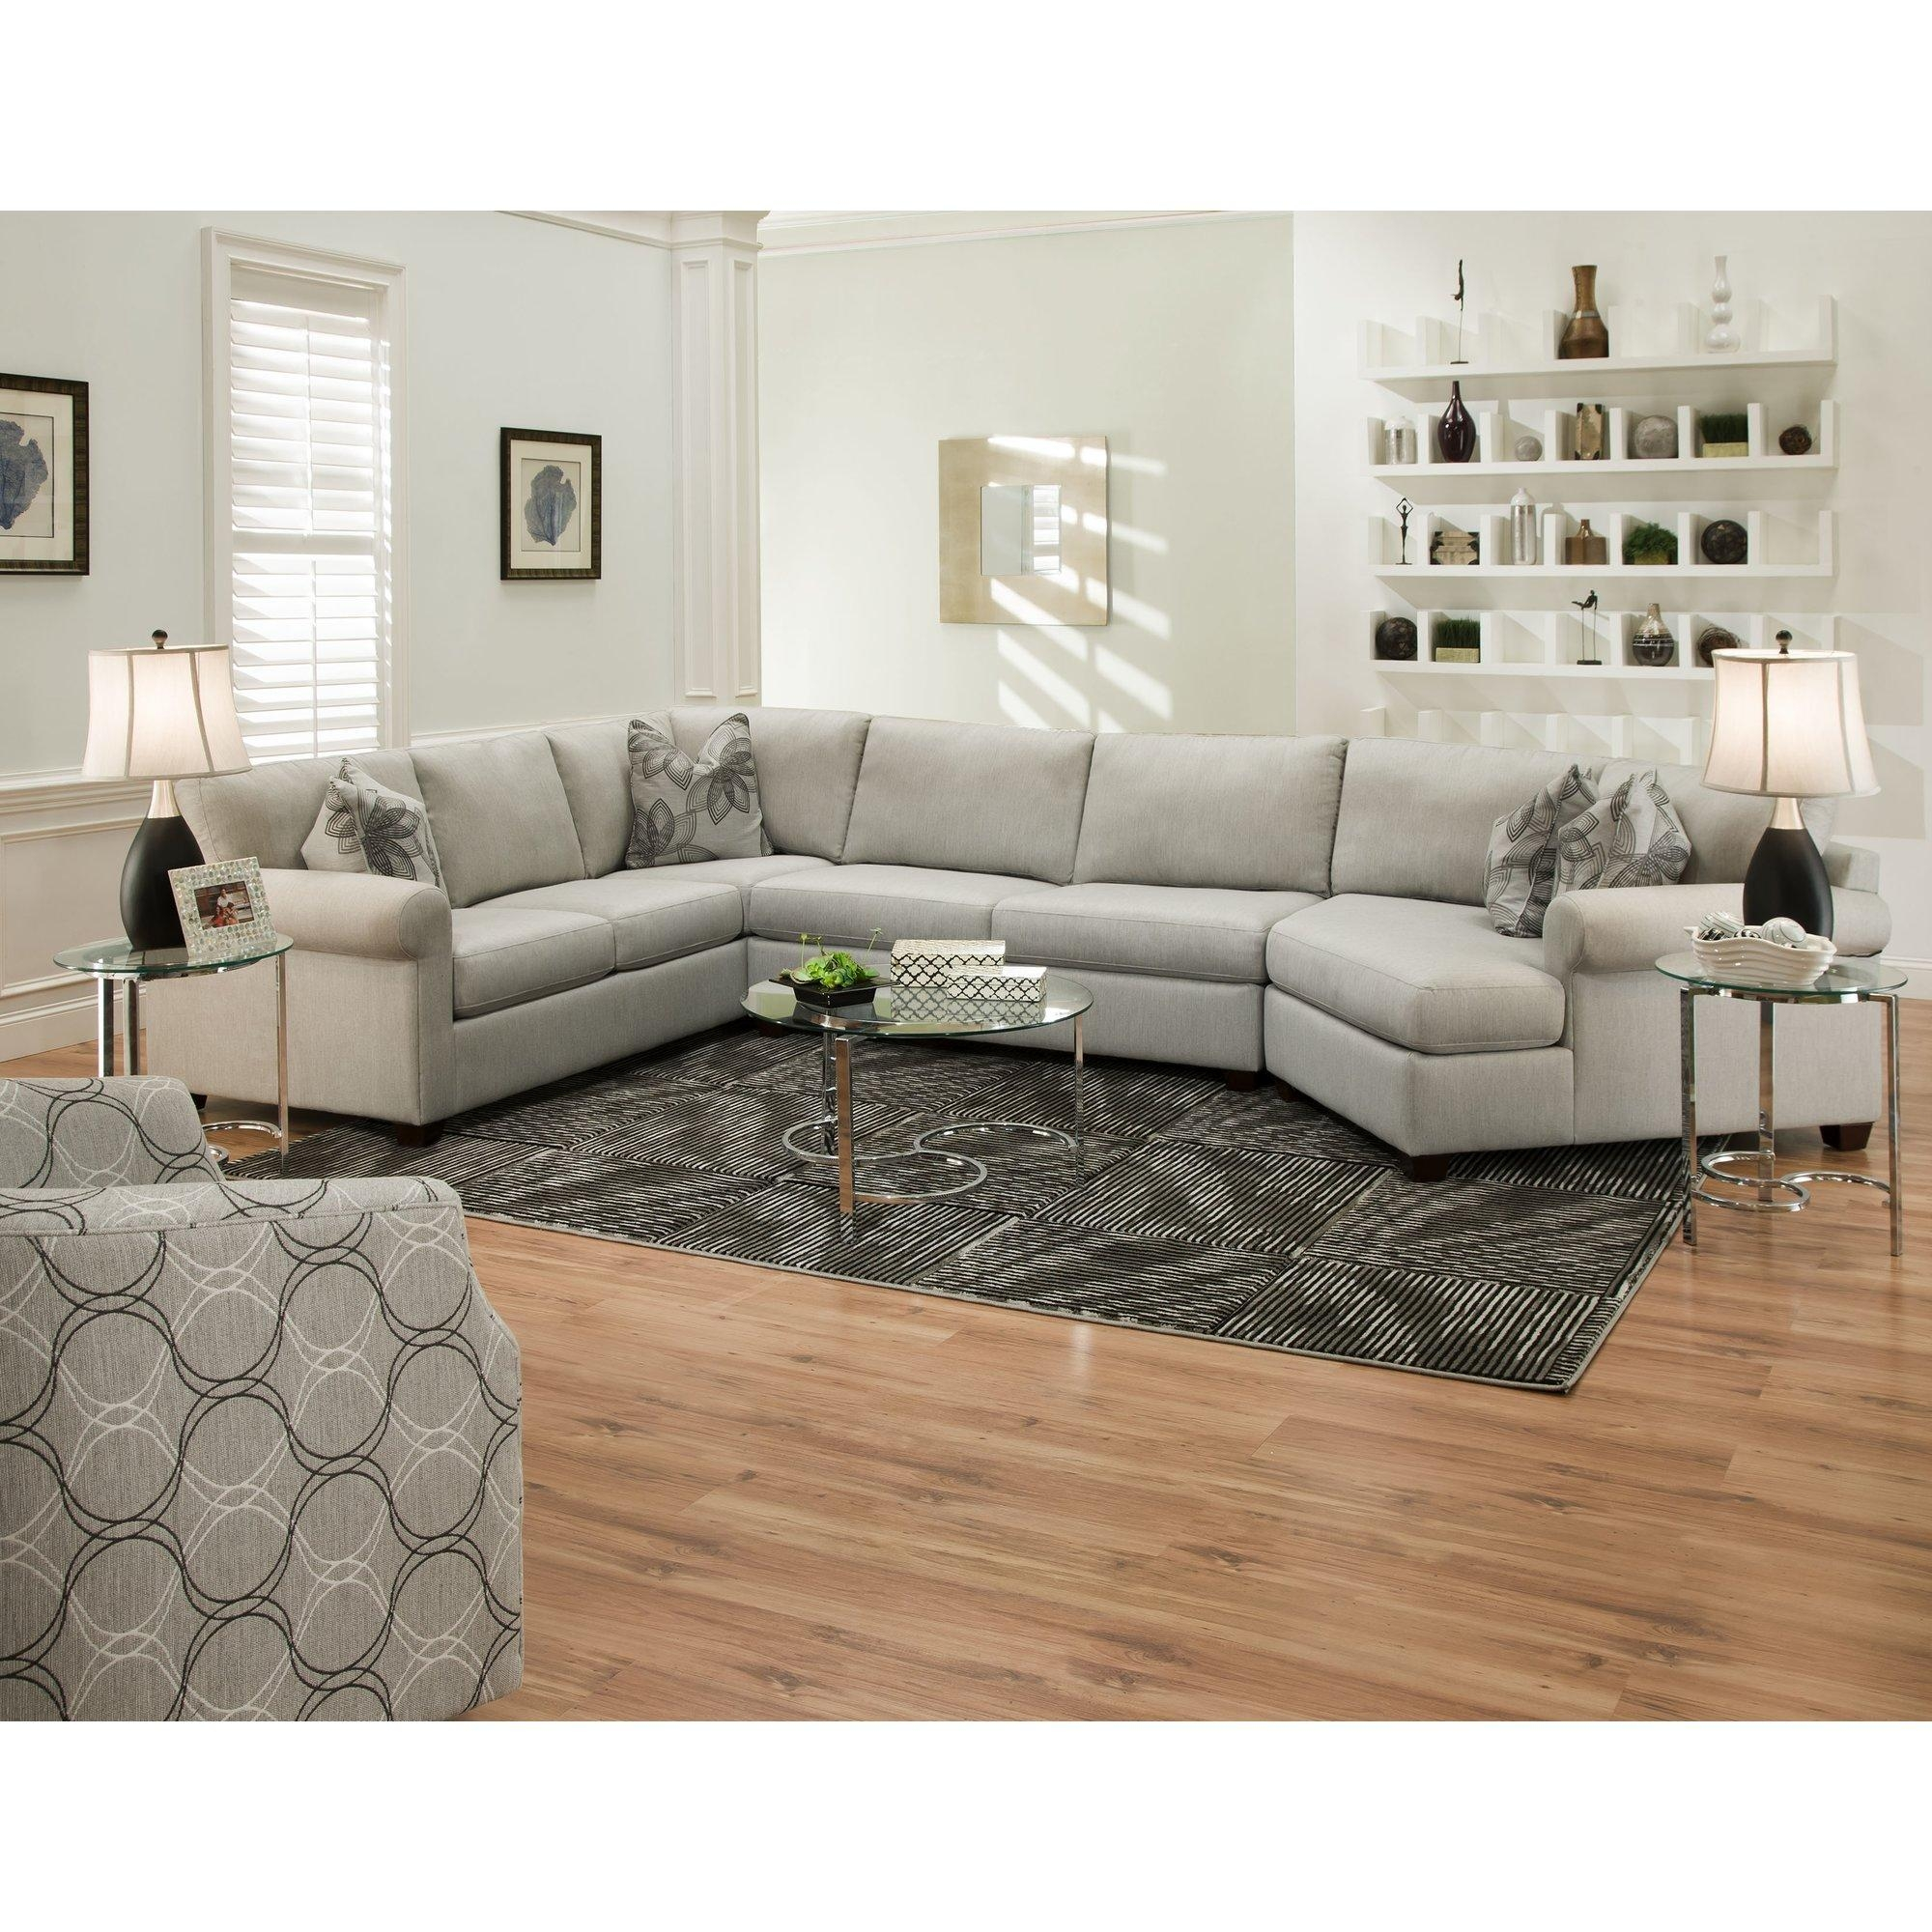 Bauhaus Sofa Reviews – Leather Sectional Sofa Intended For Bauhaus Sectional (View 10 of 15)